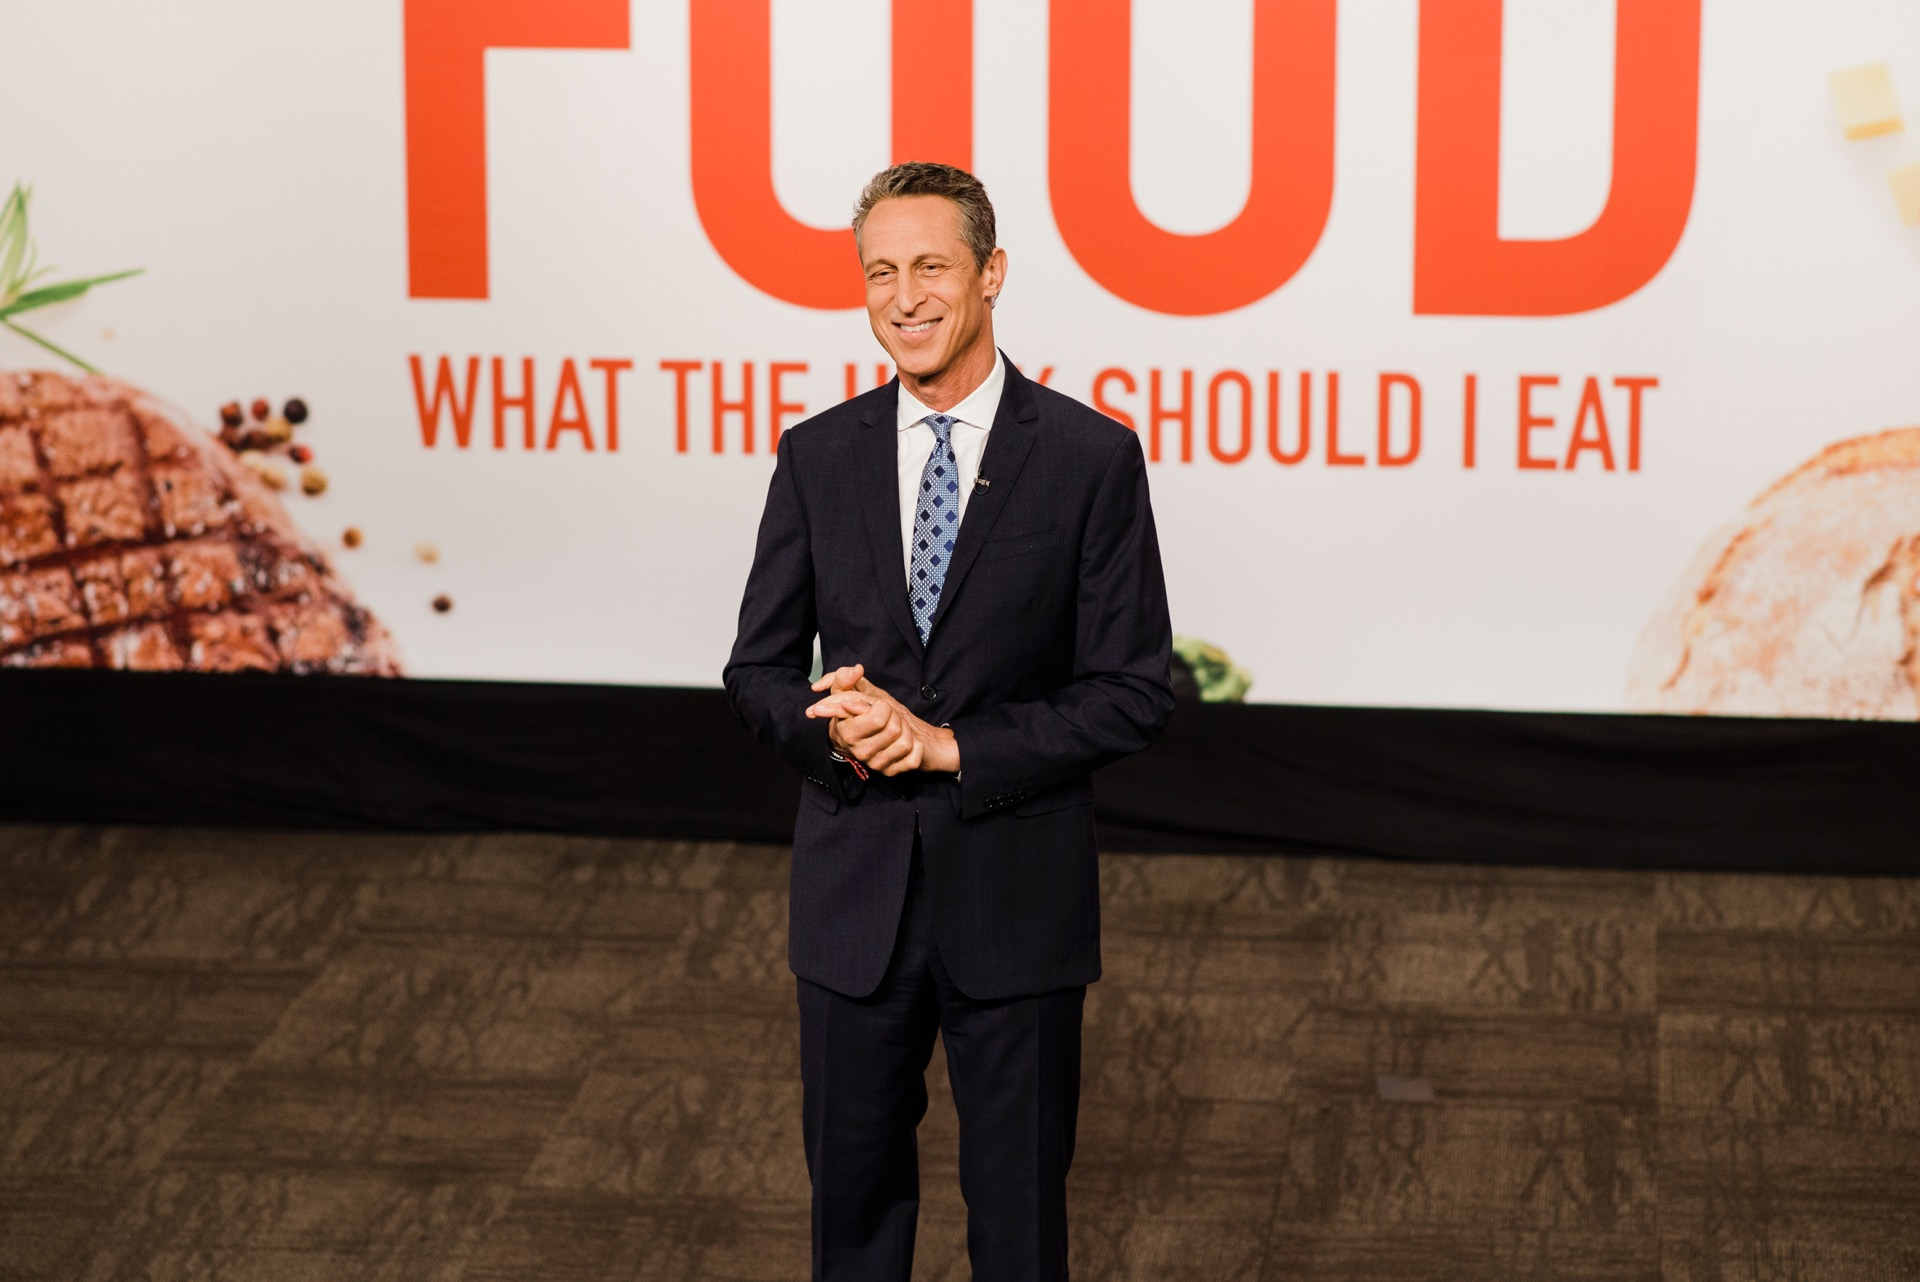 Mark Hyman, MD in front of the Food logo